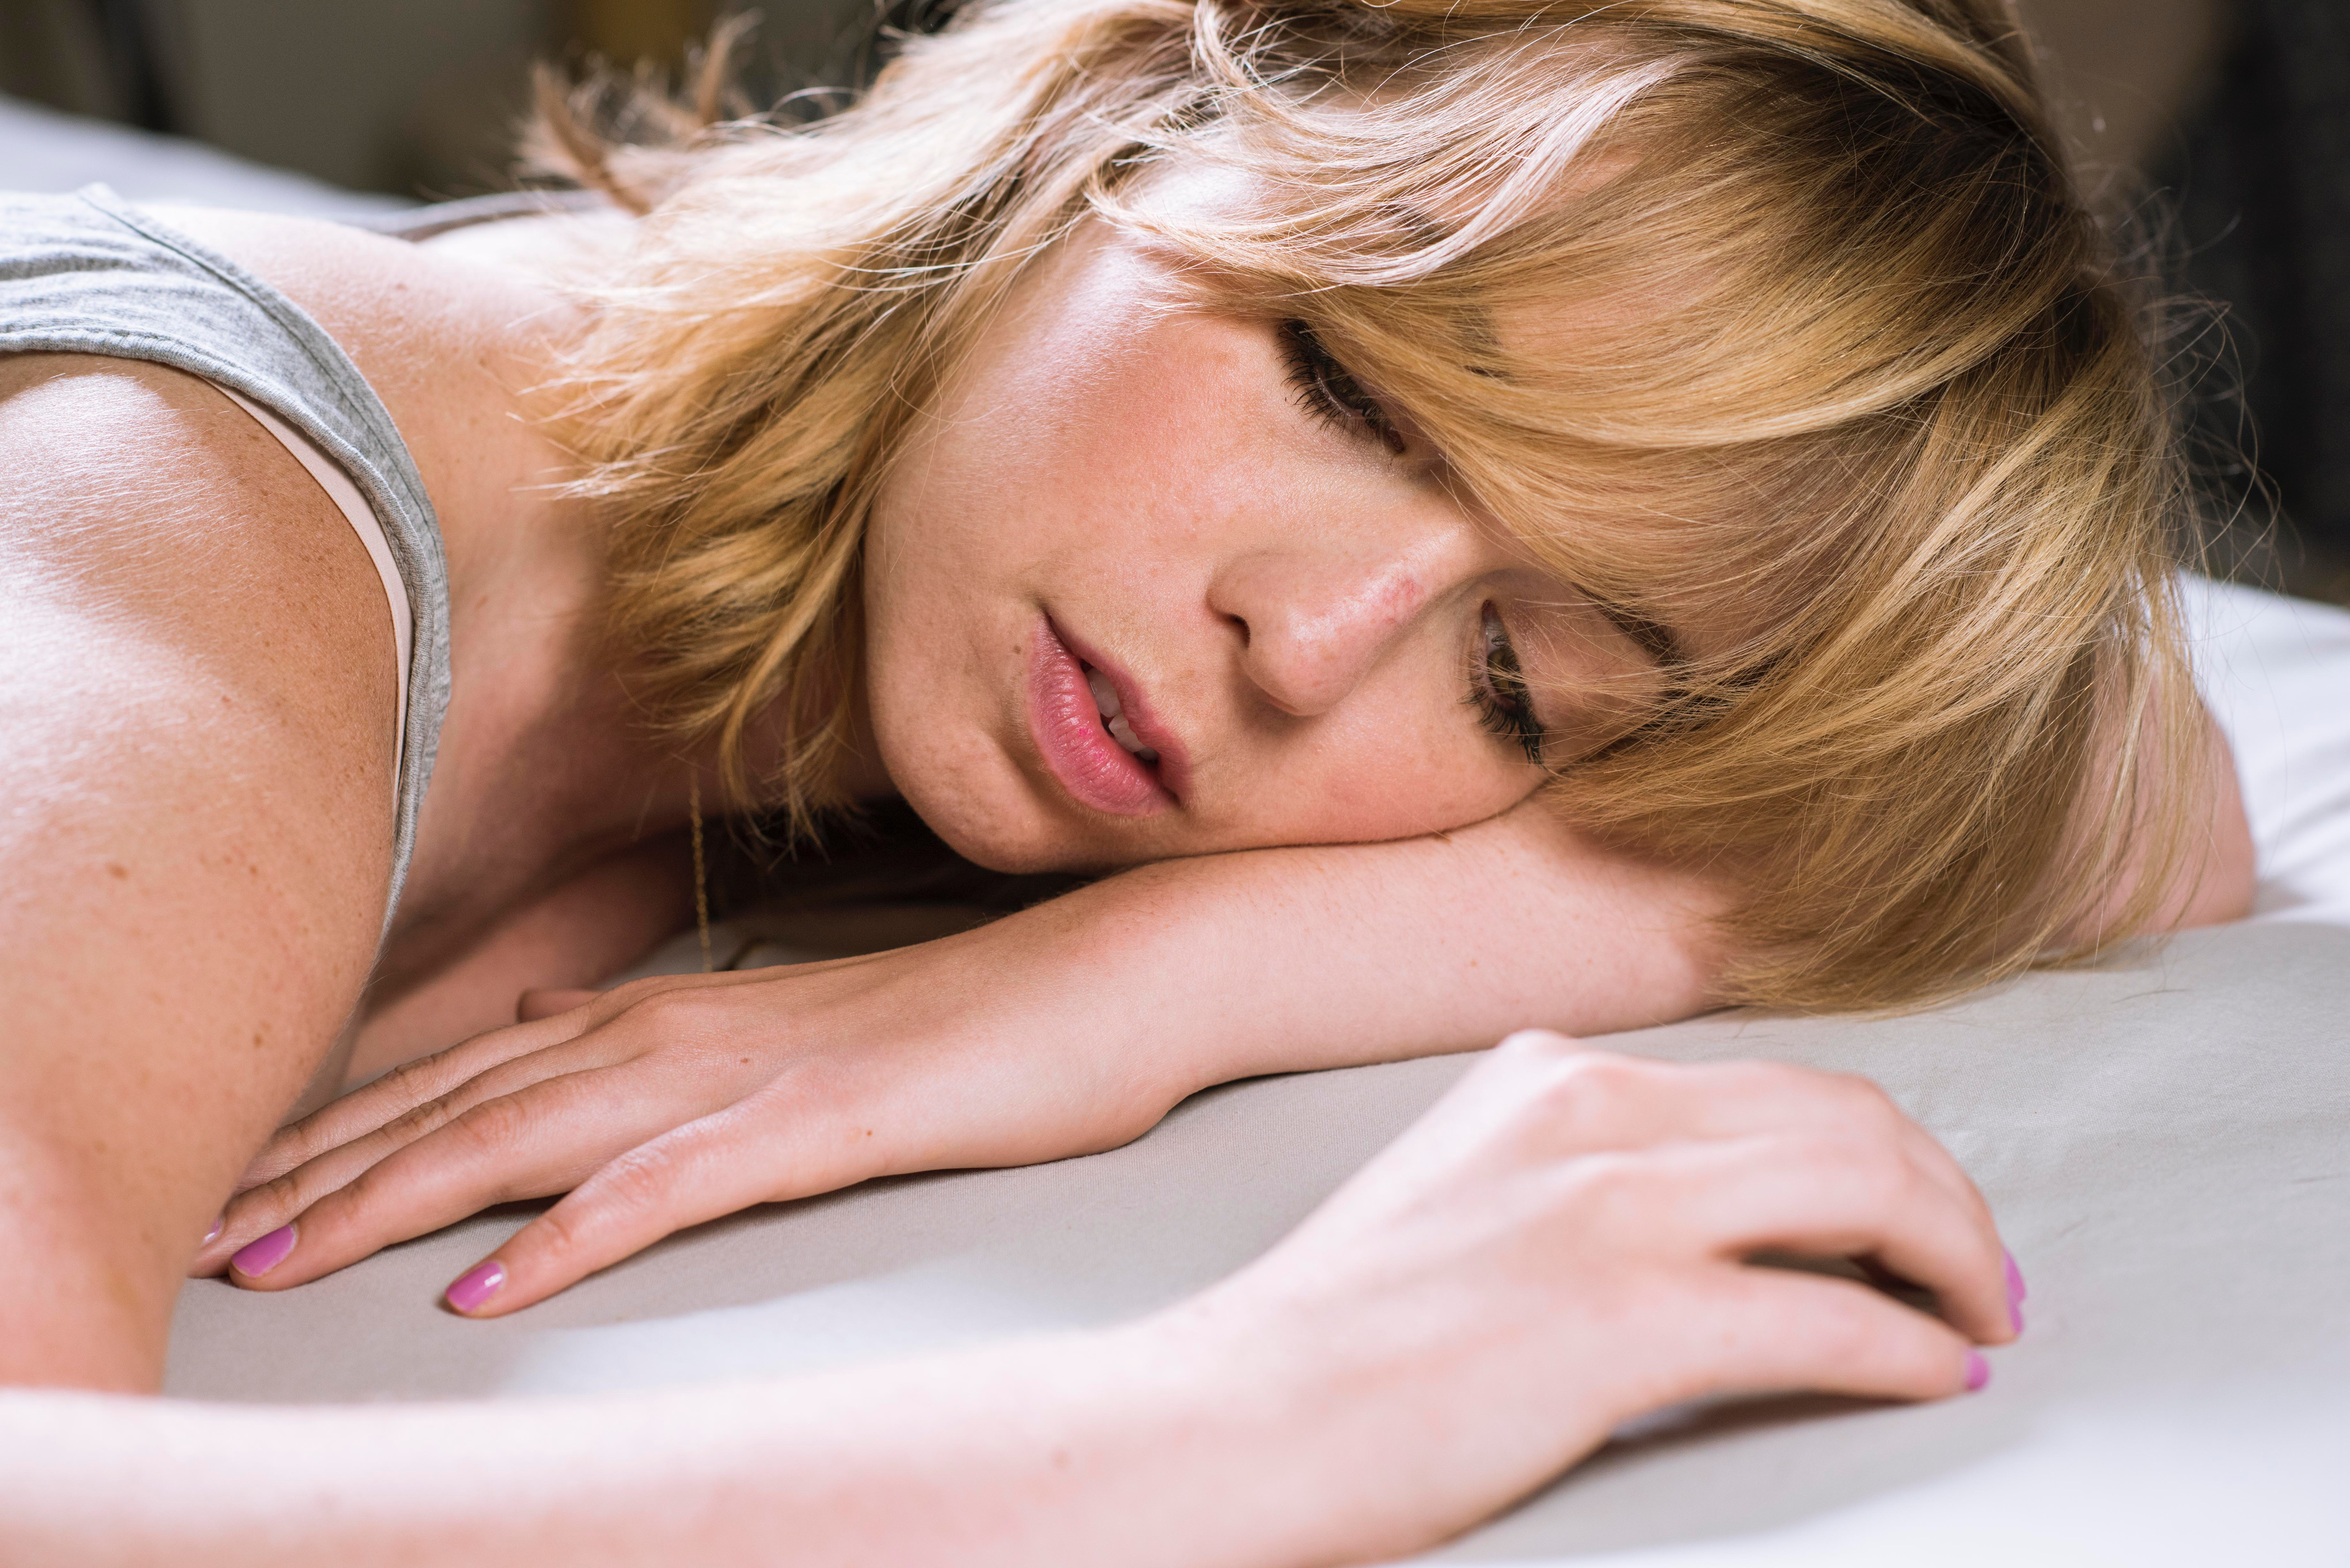 What Happens To Your Brain When You Have A Hangover